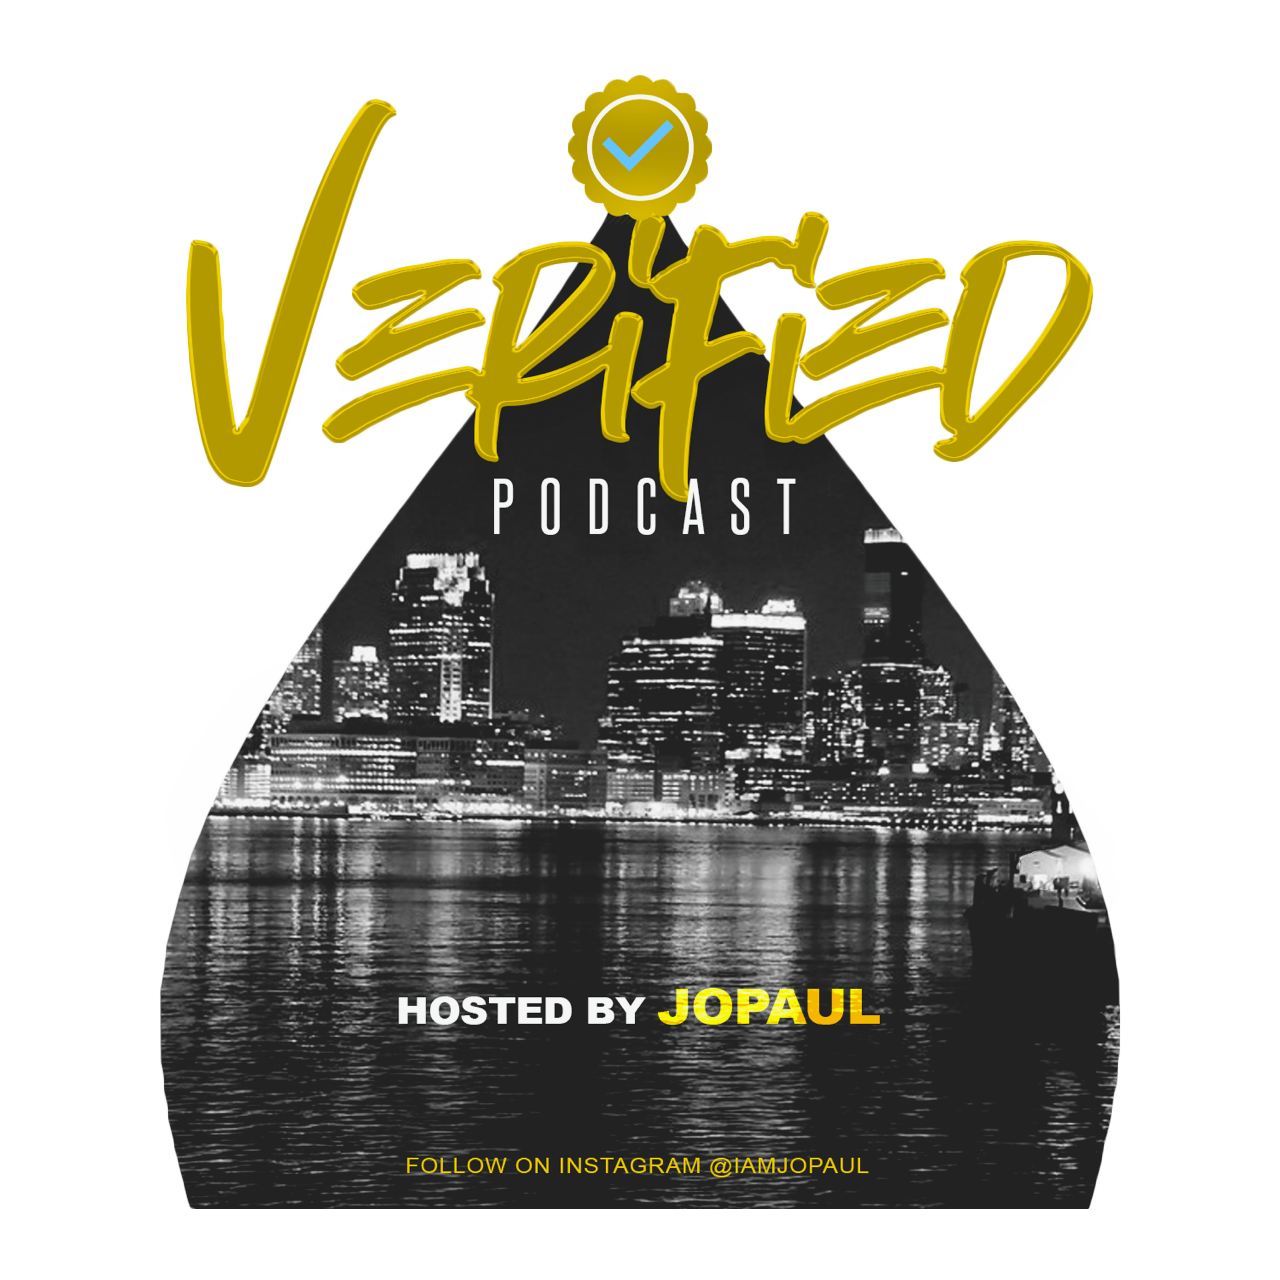 THE VERIFIED PODCAST